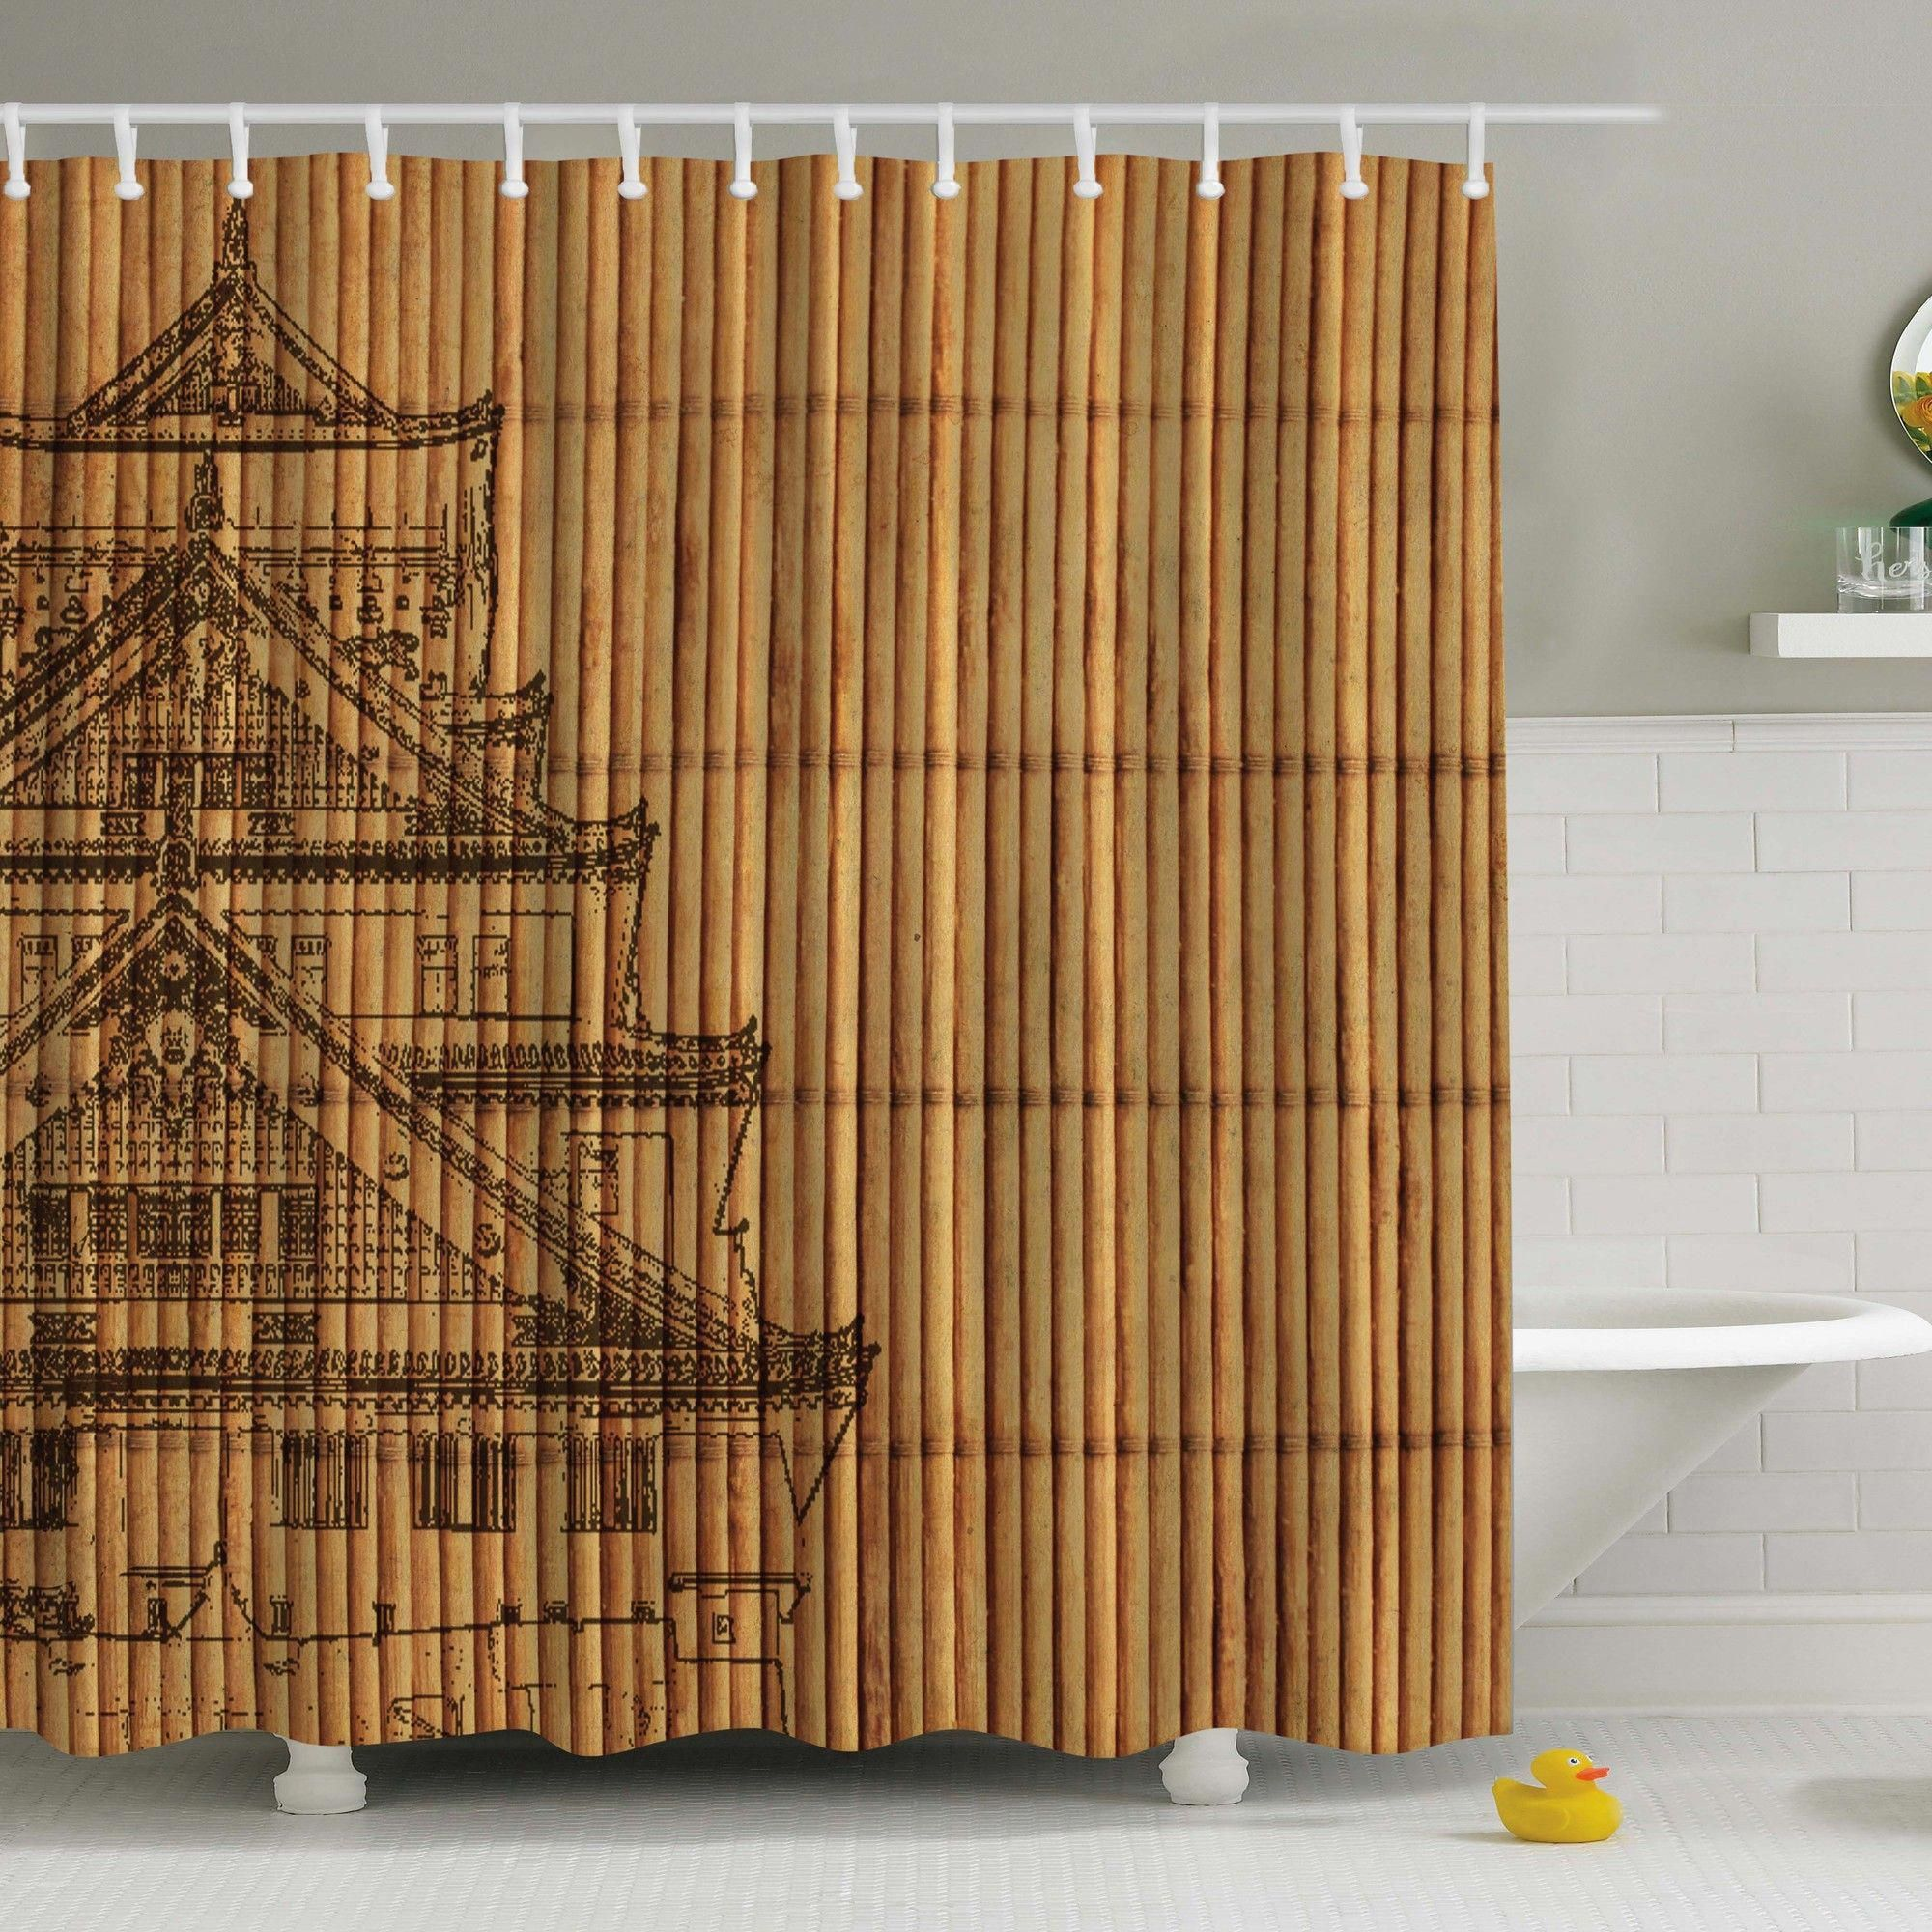 Japanese Reed Print Shower Curtain Asianhomedecorbedroomjapanesestyle